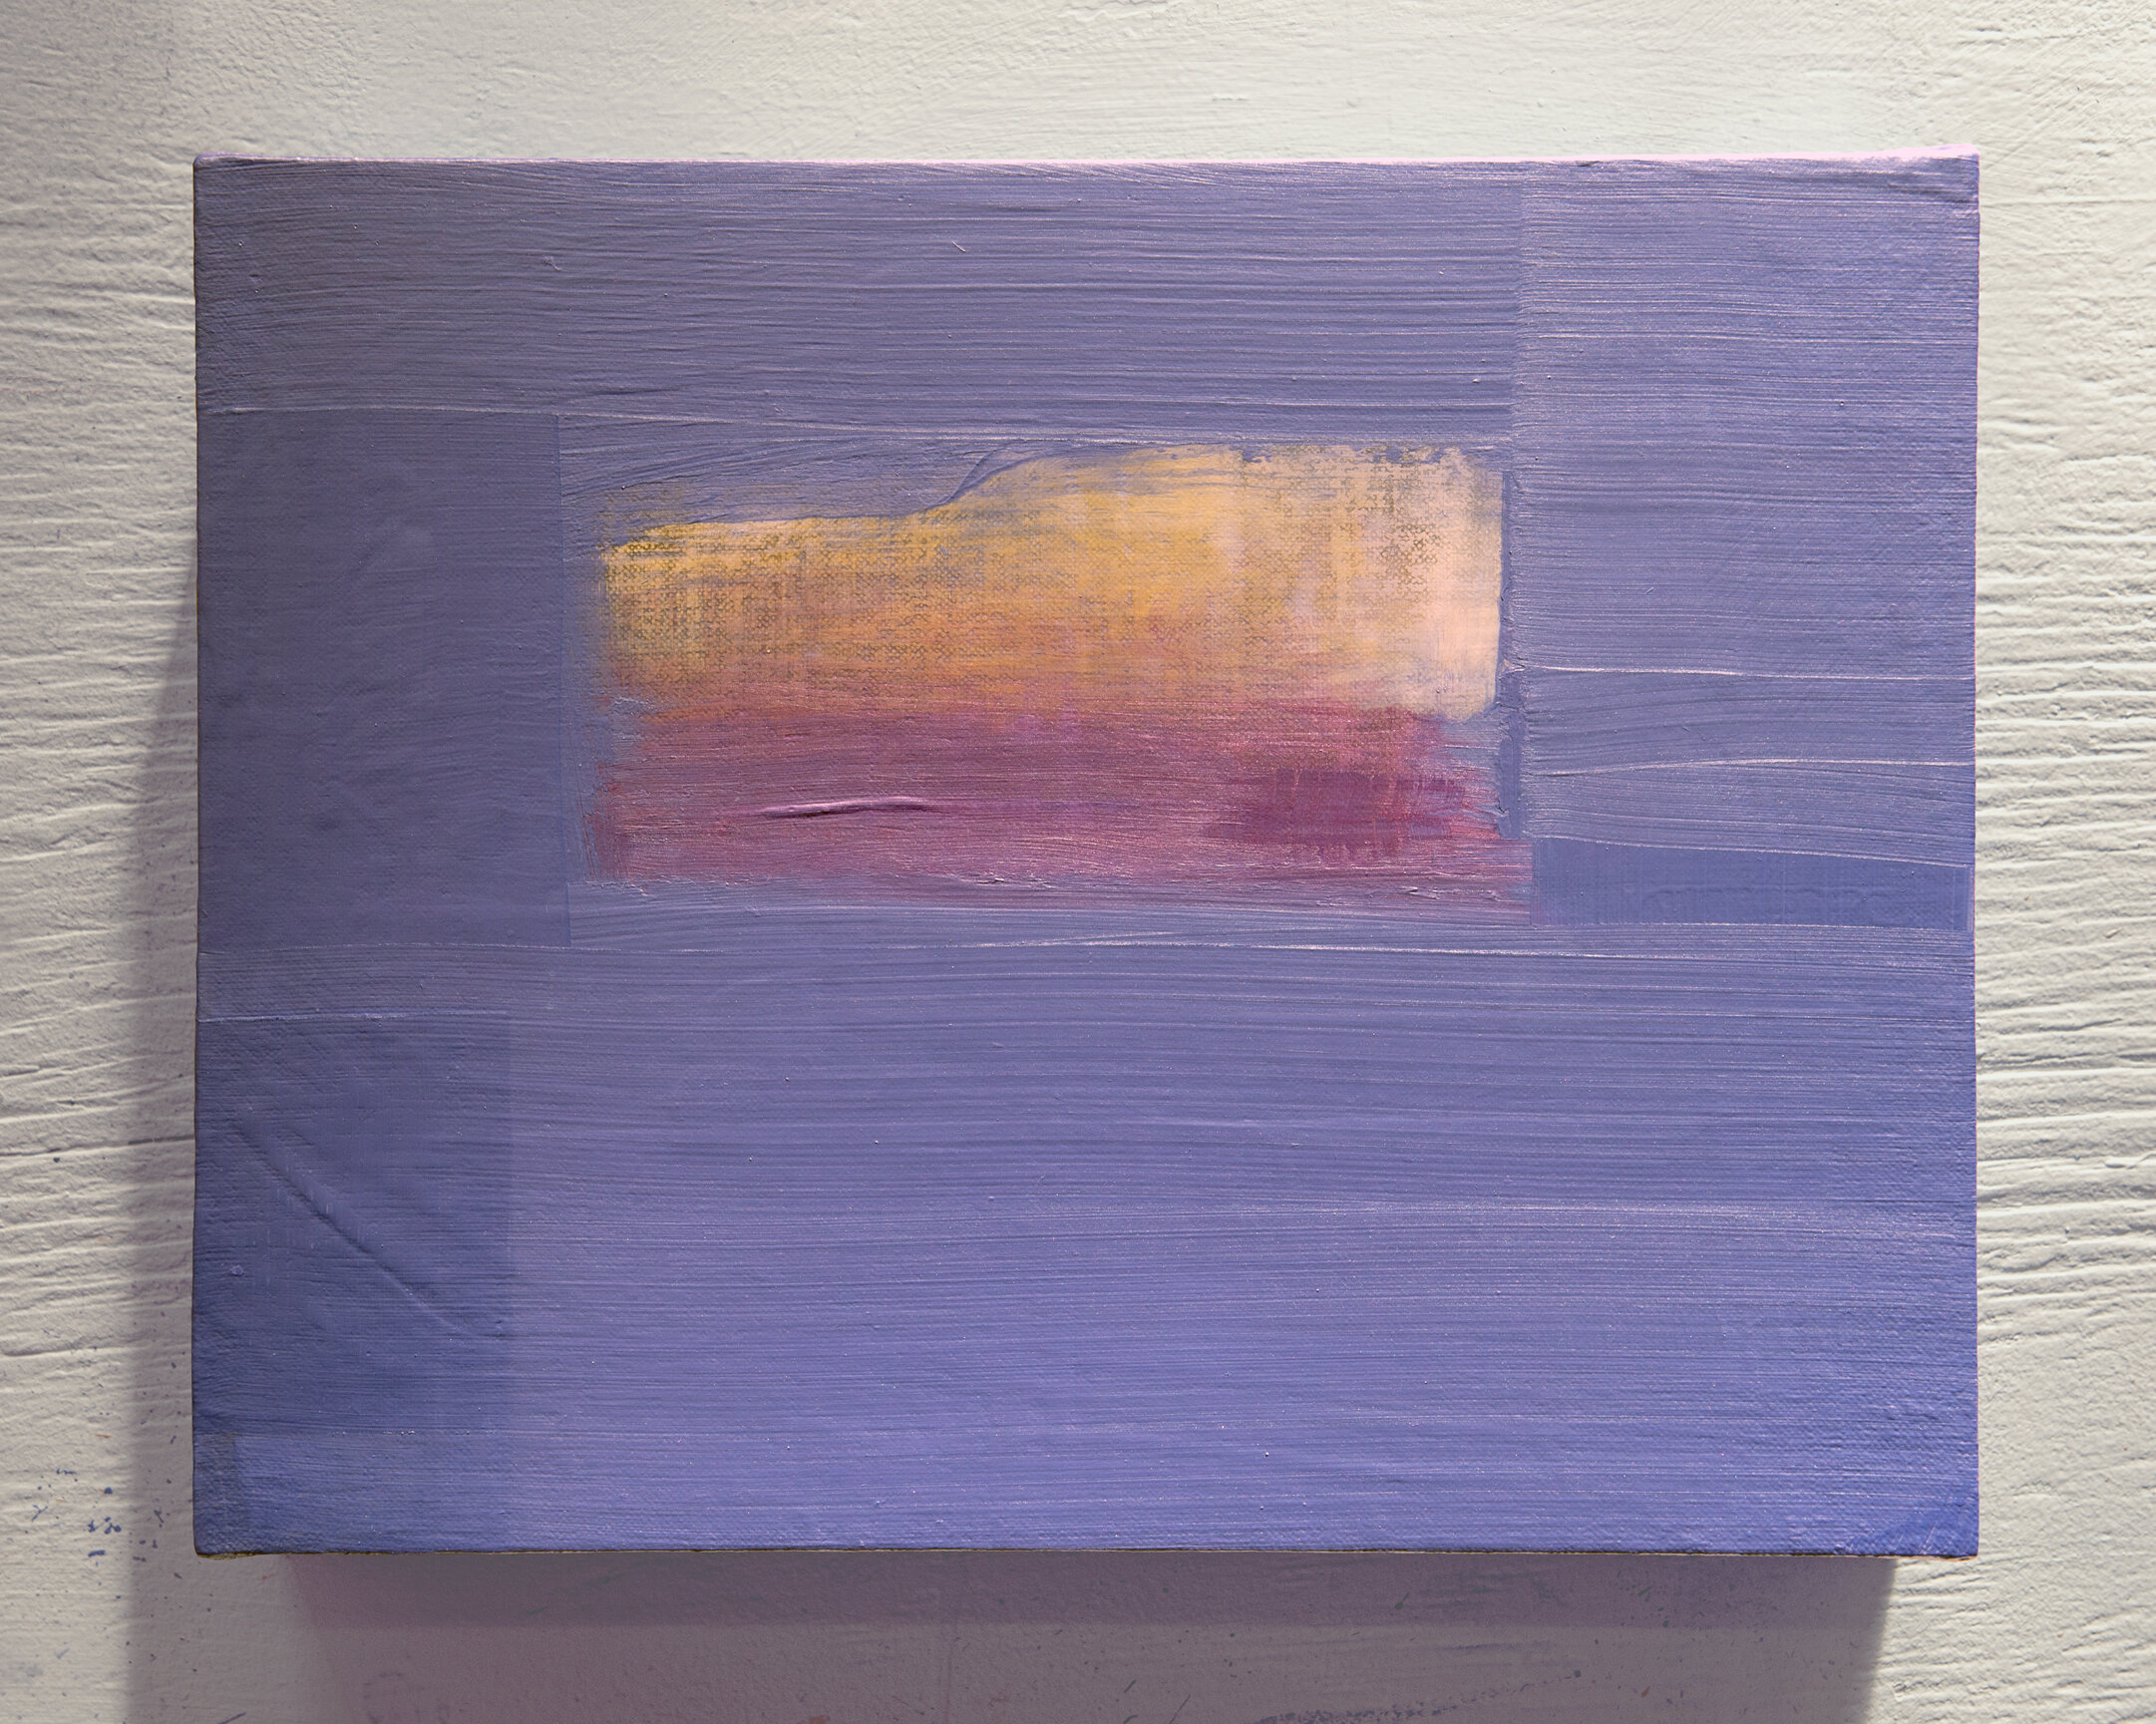 """Cobalt Lavender Sky  Medium: Iridescent acrylic and mediums on linen-wrapped support Size: 14"""" wide by 11"""" tall by 2.5"""" deep Date: 2019"""